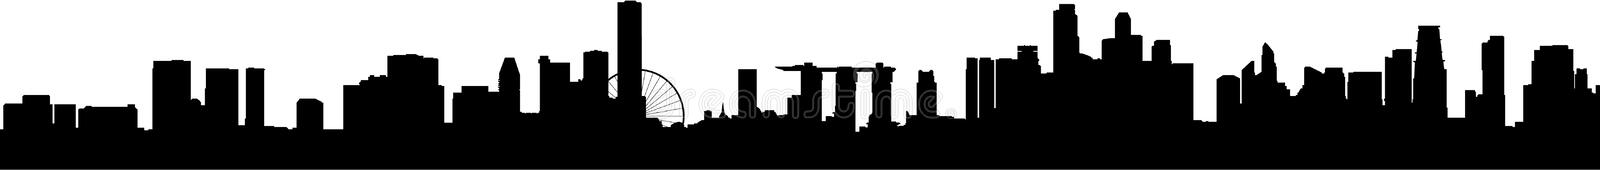 Singapore Skyline Silhouette Wide. The latest city skyline silhouette of Singapore, with the new Marina Sands Casino and the Singapore Flyer added. Extra wide